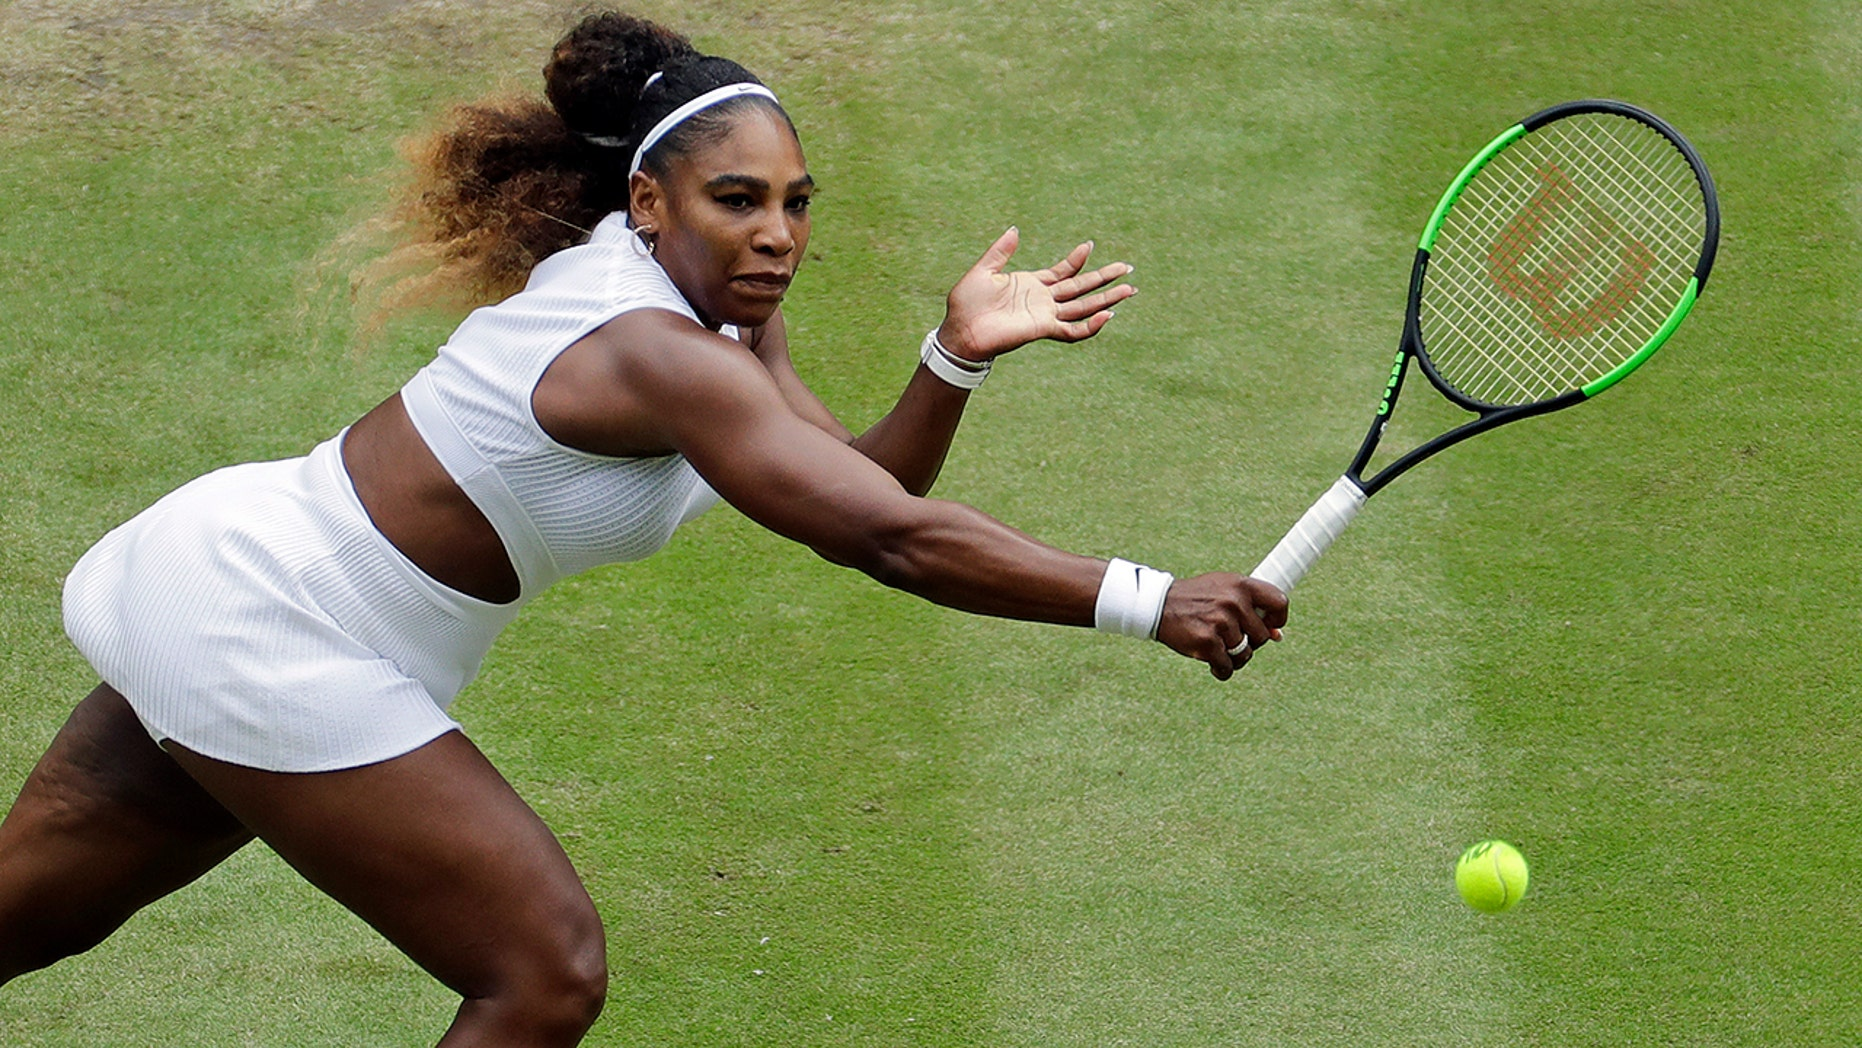 What channel is Wimbledon on? Serena Williams vs